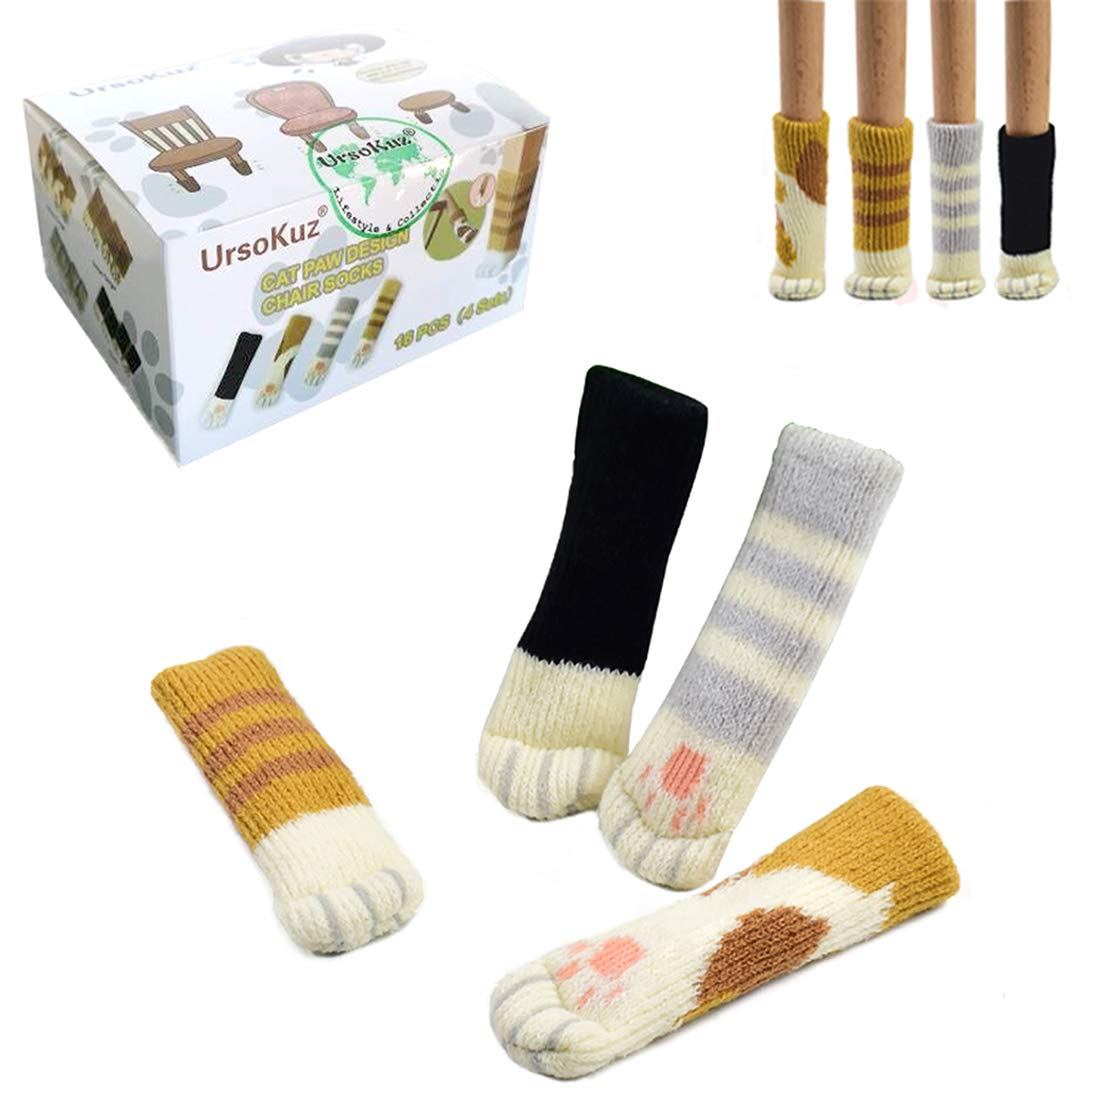 20PCS (5 Sets) Chair Socks Fancy Table Leg Pads with Cute Cat Paws Design, Reliable Furniture and Floor Protector, 4 Different Patterns + 1 Stripe Ginger Pattern - Pack of 20 socks EVER OASIS